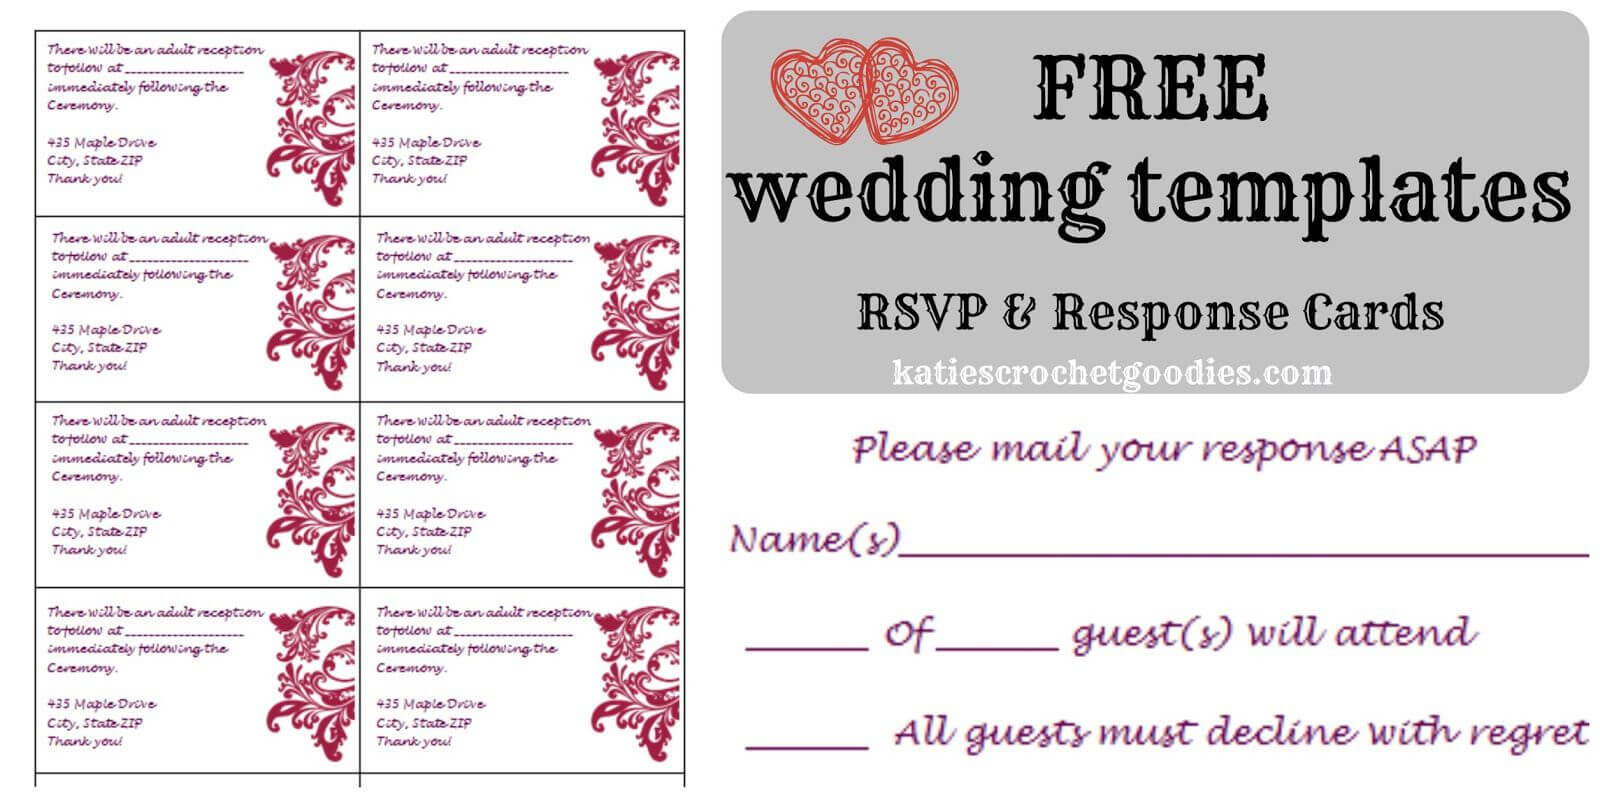 Free Wedding Rsvp & Response Card Template Templat | Free Within Free Printable Wedding Rsvp Card Templates